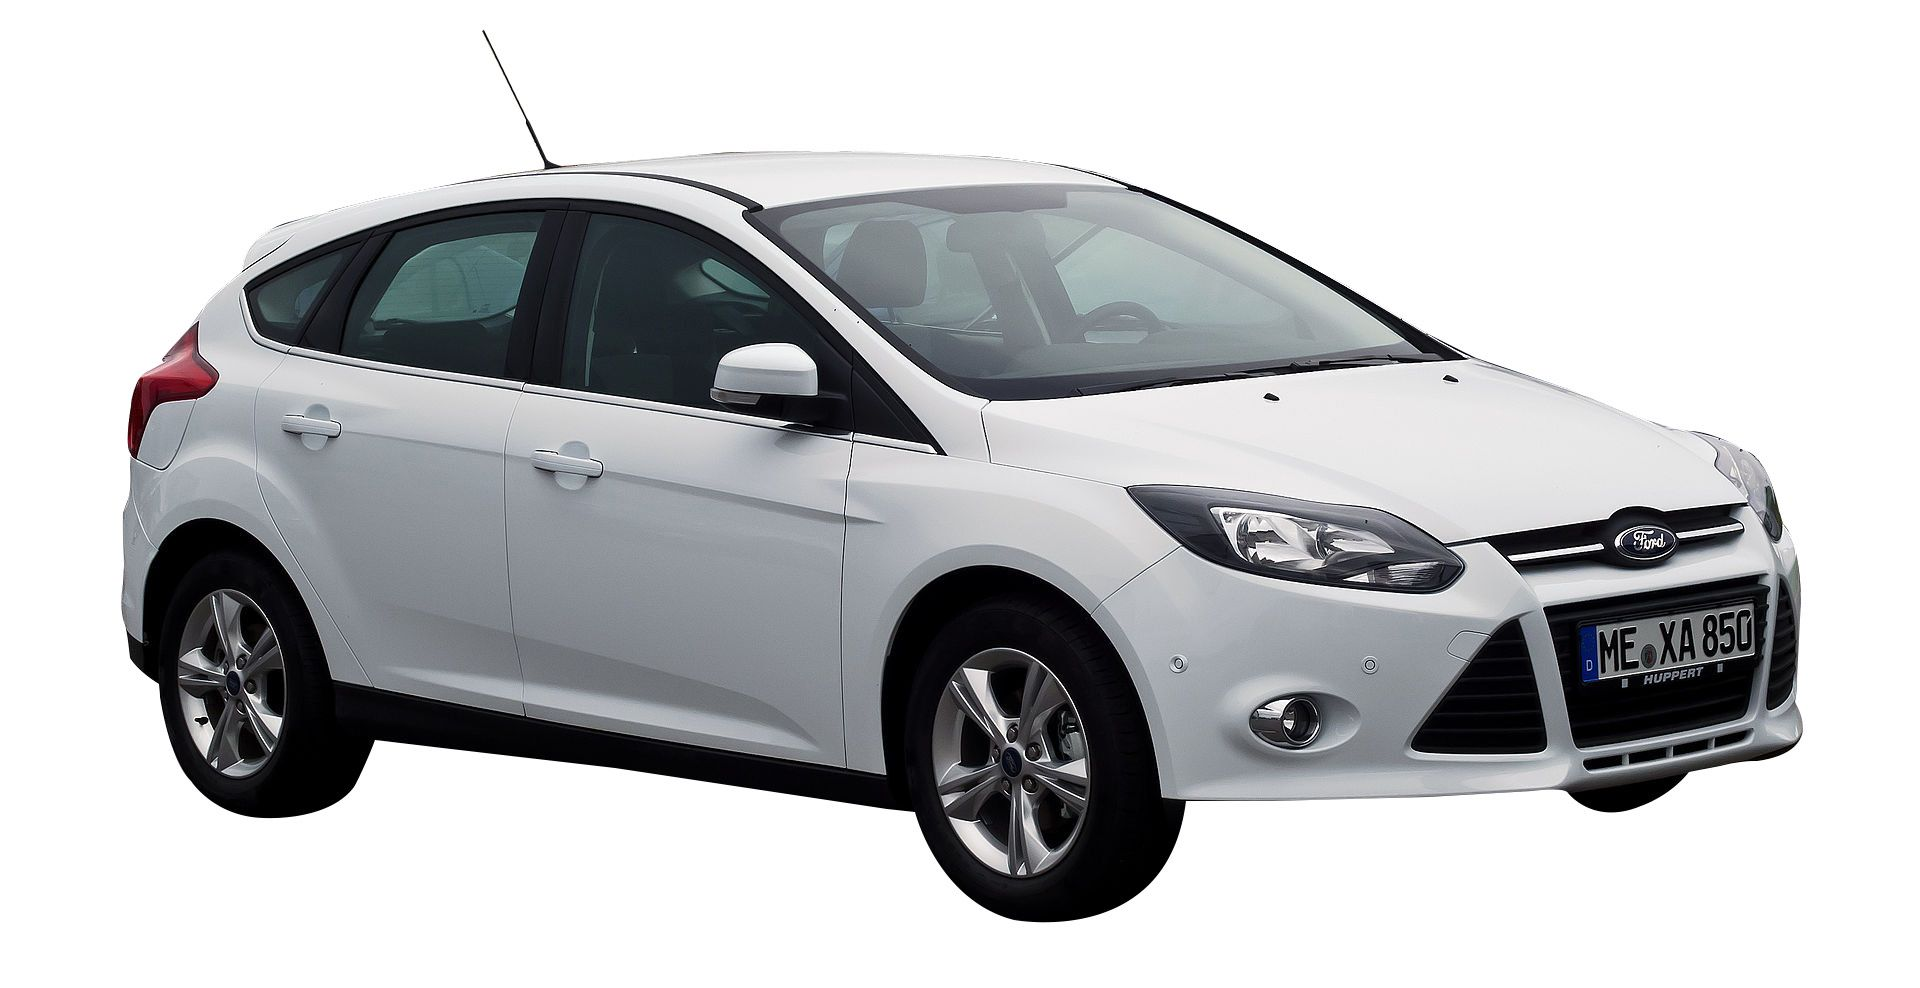 One Of The Most Fuel Efficient Rental Cars In Our Fleet